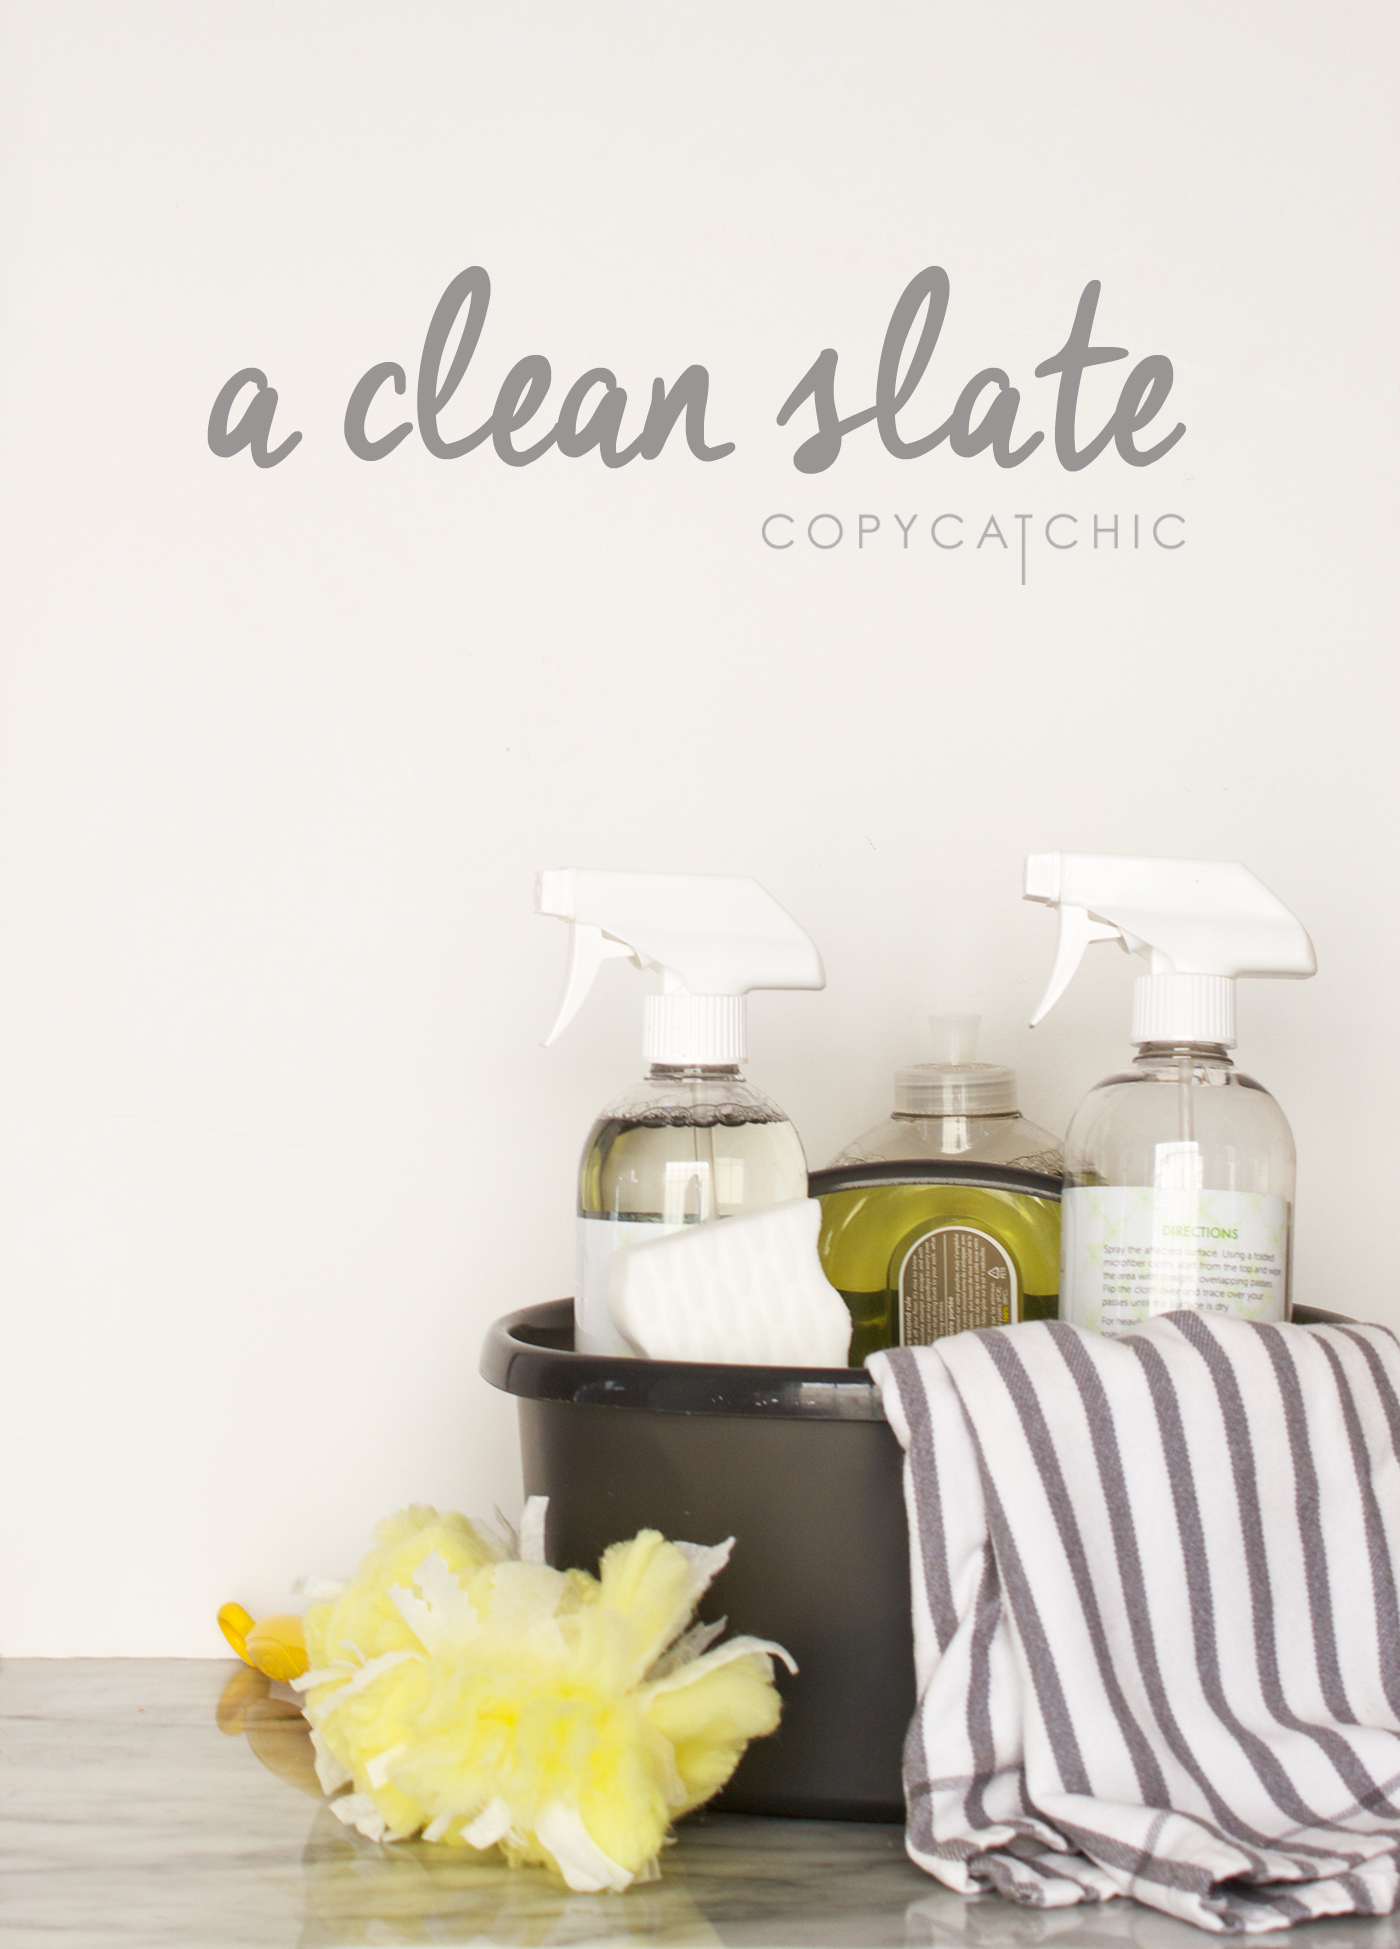 Copy Cat Chic tips & tricks on keeping your new home as clean as the day you moved in. Keep a clean slate by organizing and cleaning with Mr Clean & Swiffer